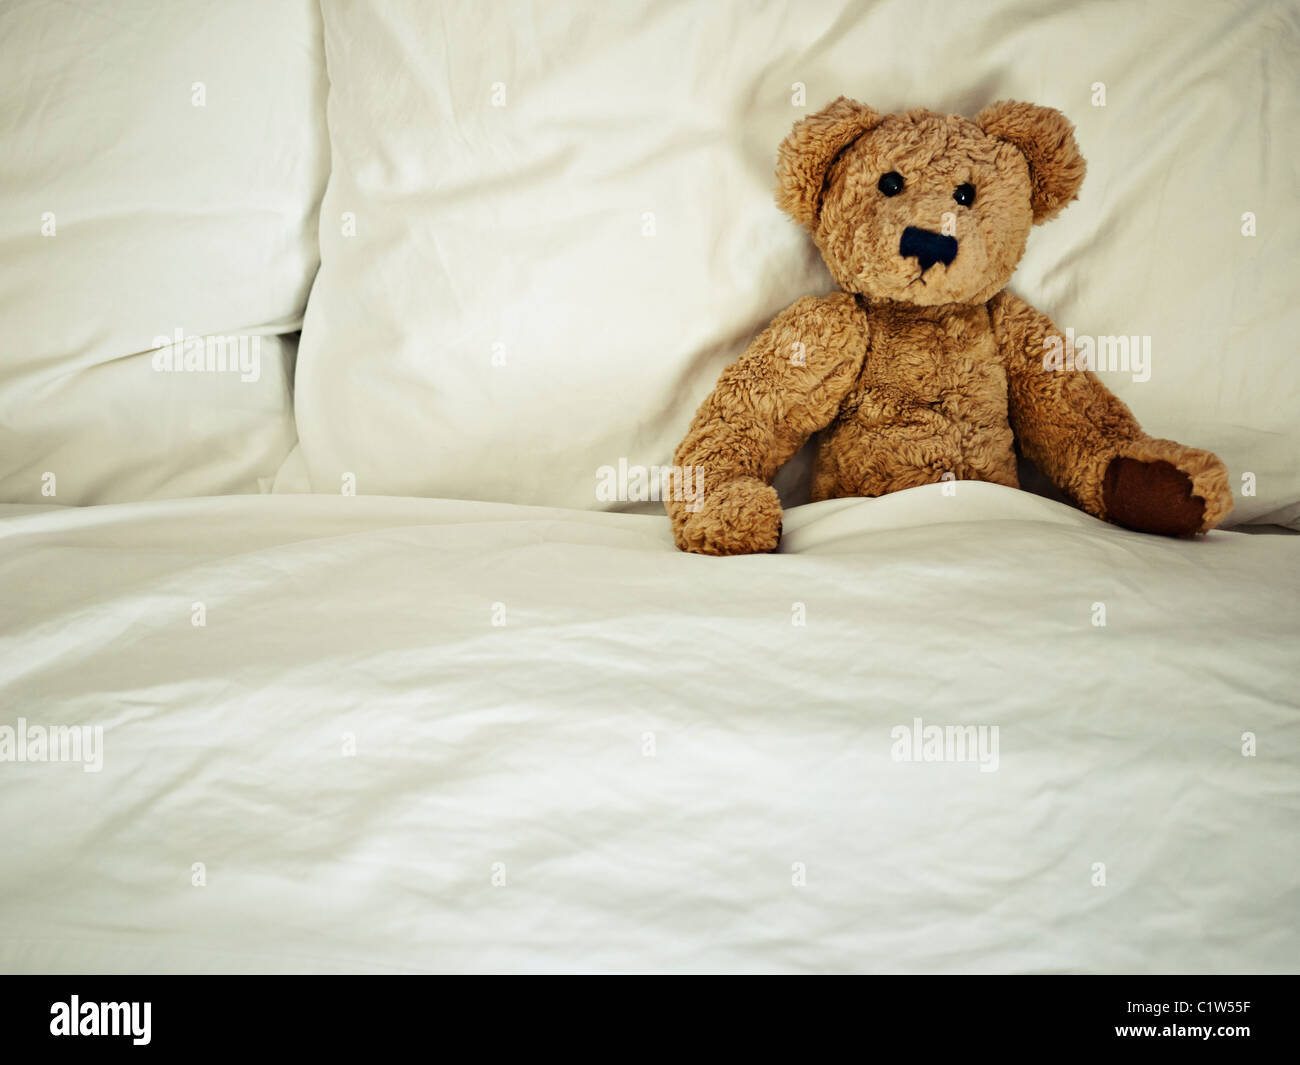 Ours en peluche dans le lit Photo Stock